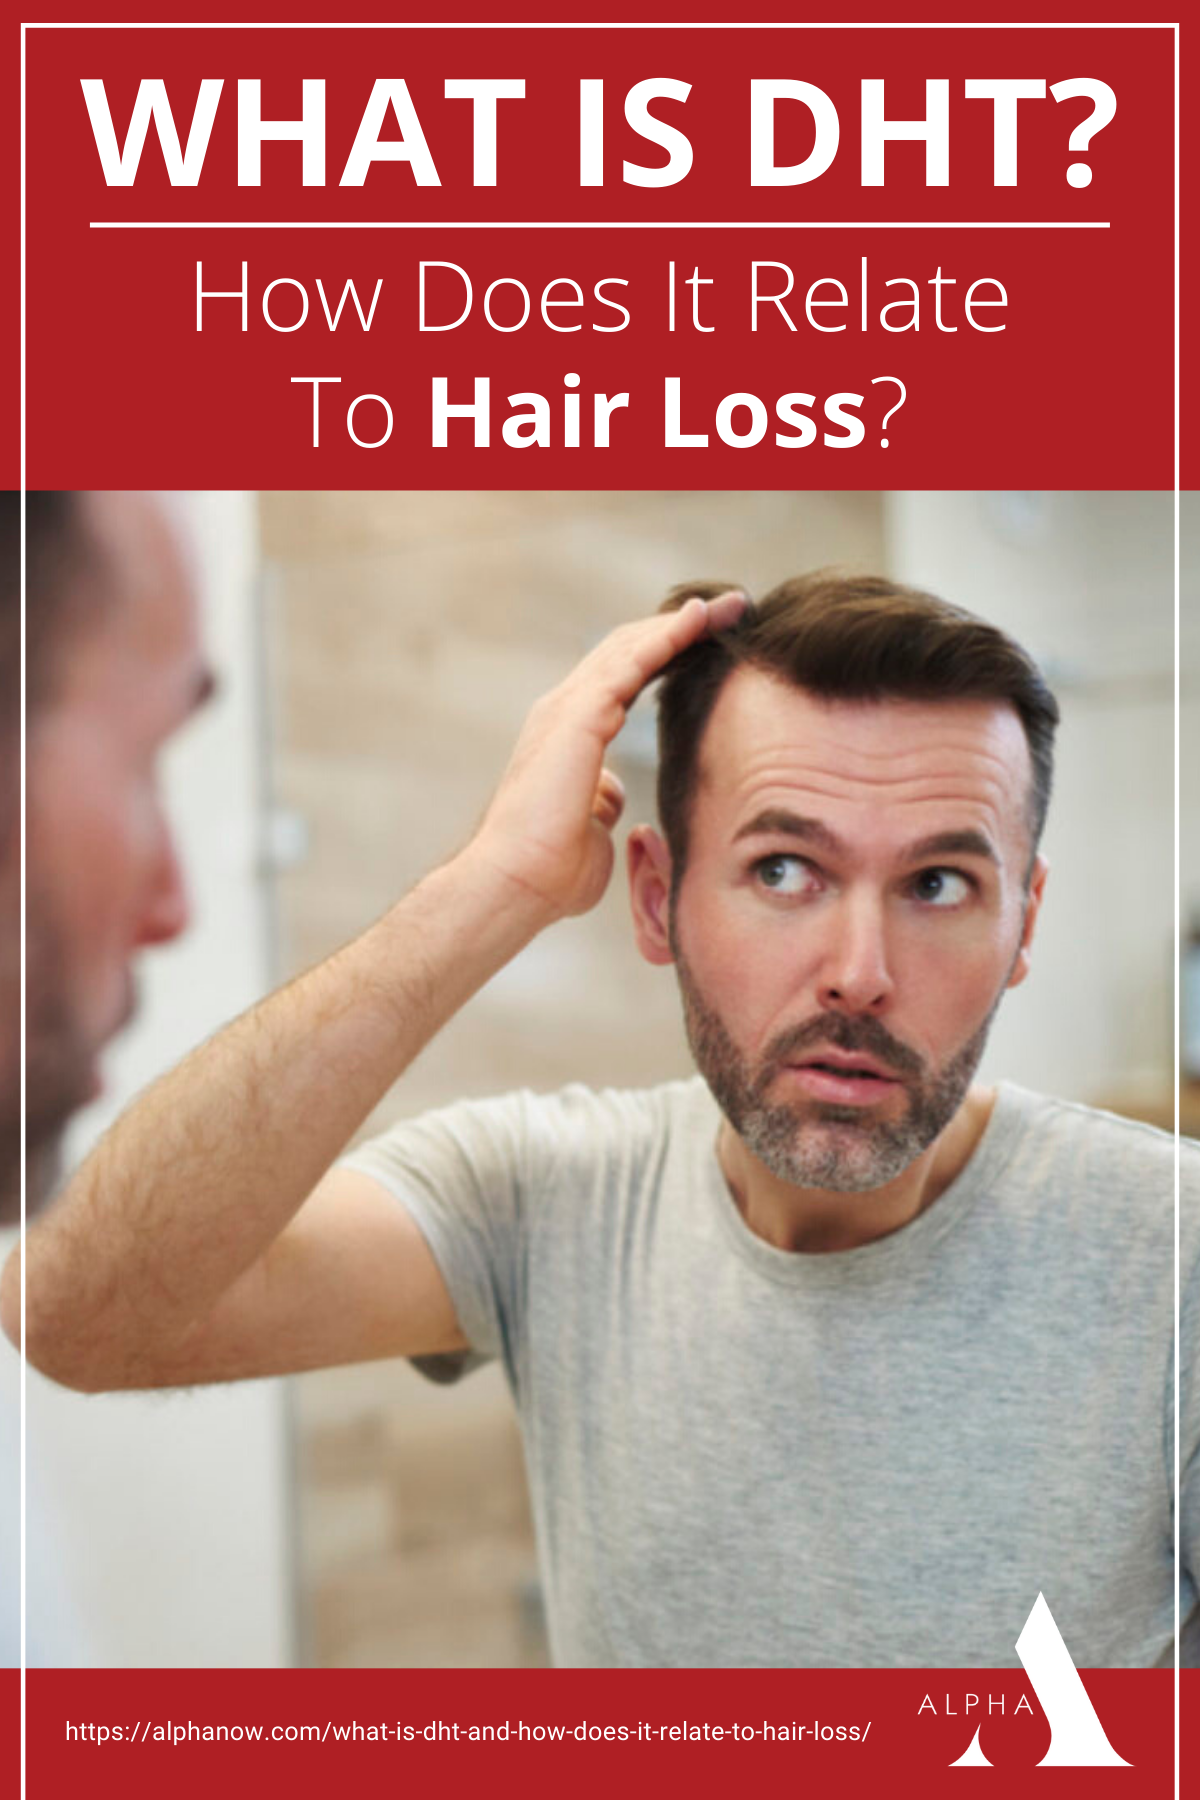 What Is DHT And How Does It Relate To Hair Loss? https://alphanow.com/what-is-dht-and-how-does-it-relate-to-hair-loss/